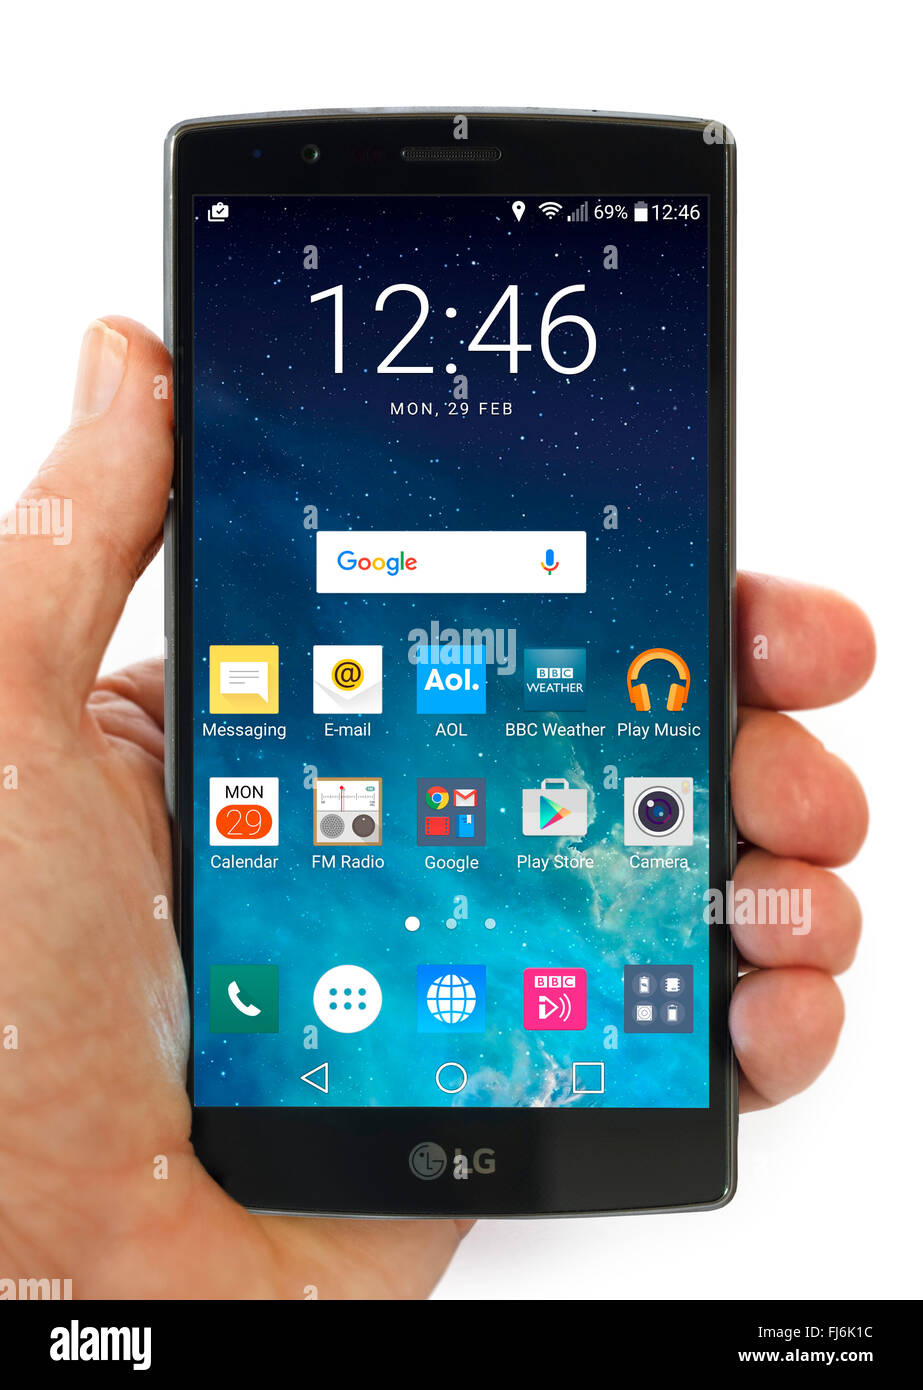 home screen on an lg g4 5 5 inch android phone running android 6